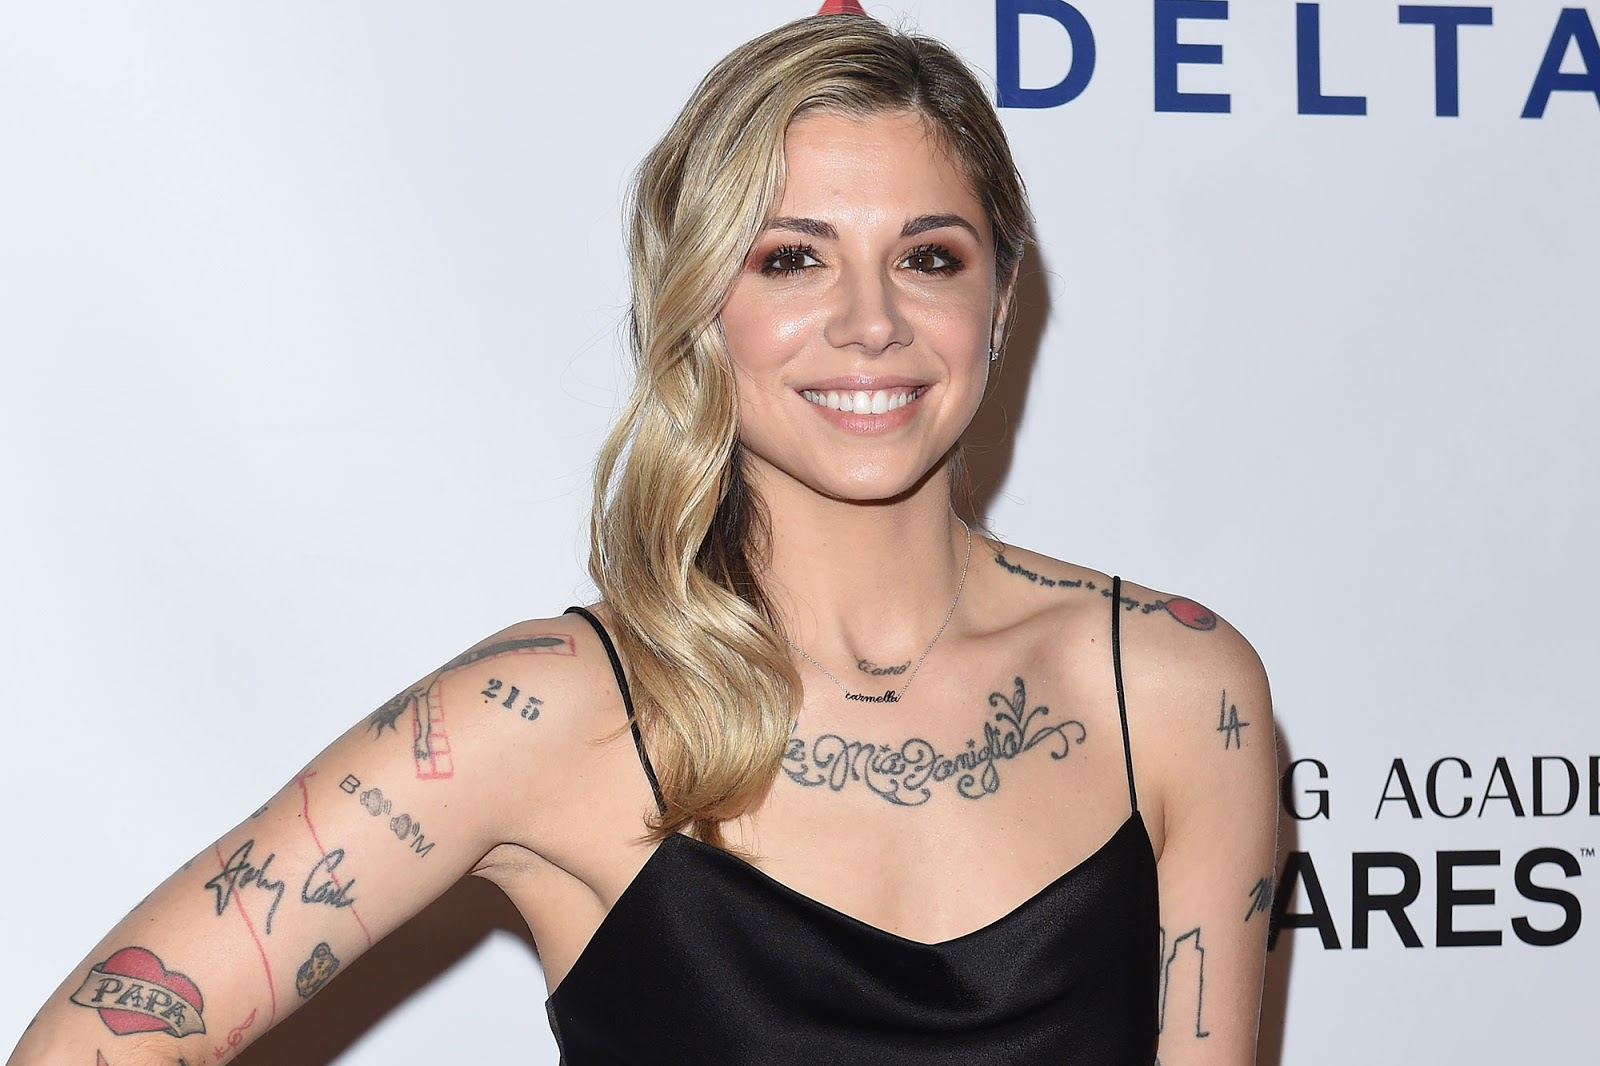 Christina Perri smiles at a red carpet event, proudly displaying her tattoos.